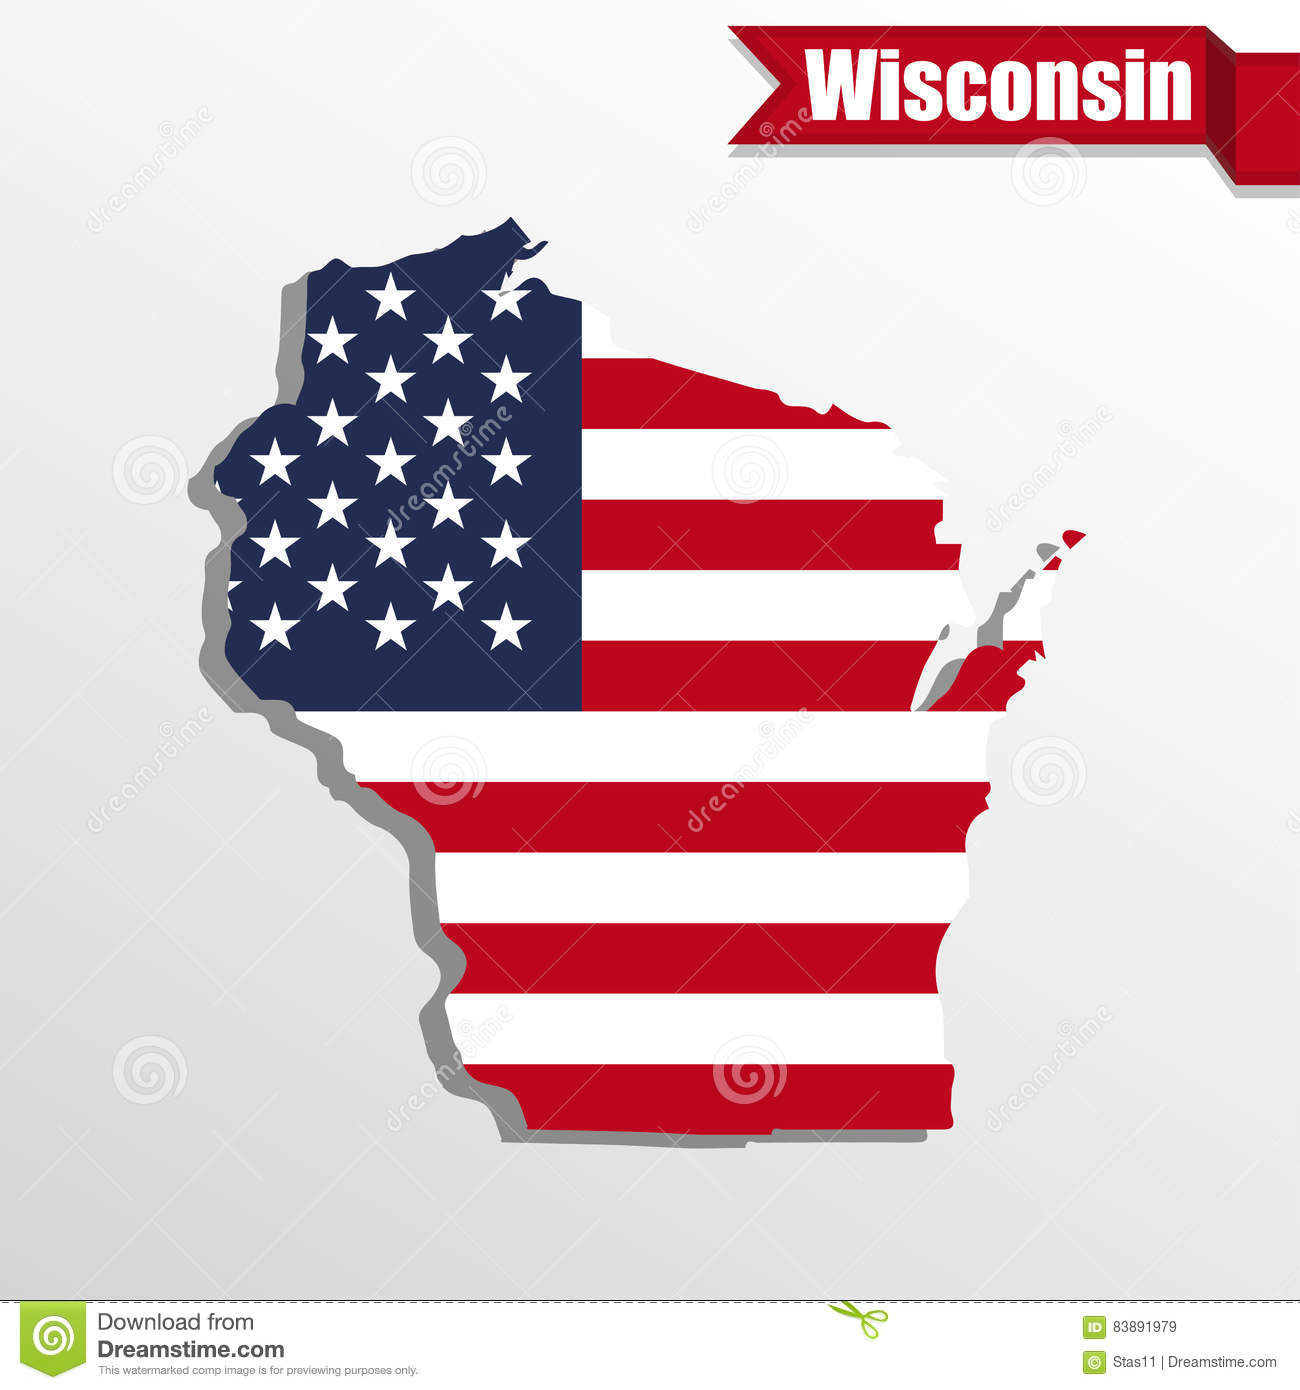 Wisconsin State Map With US Flag Inside And Ribbon Stock - Wisconsin state map of us